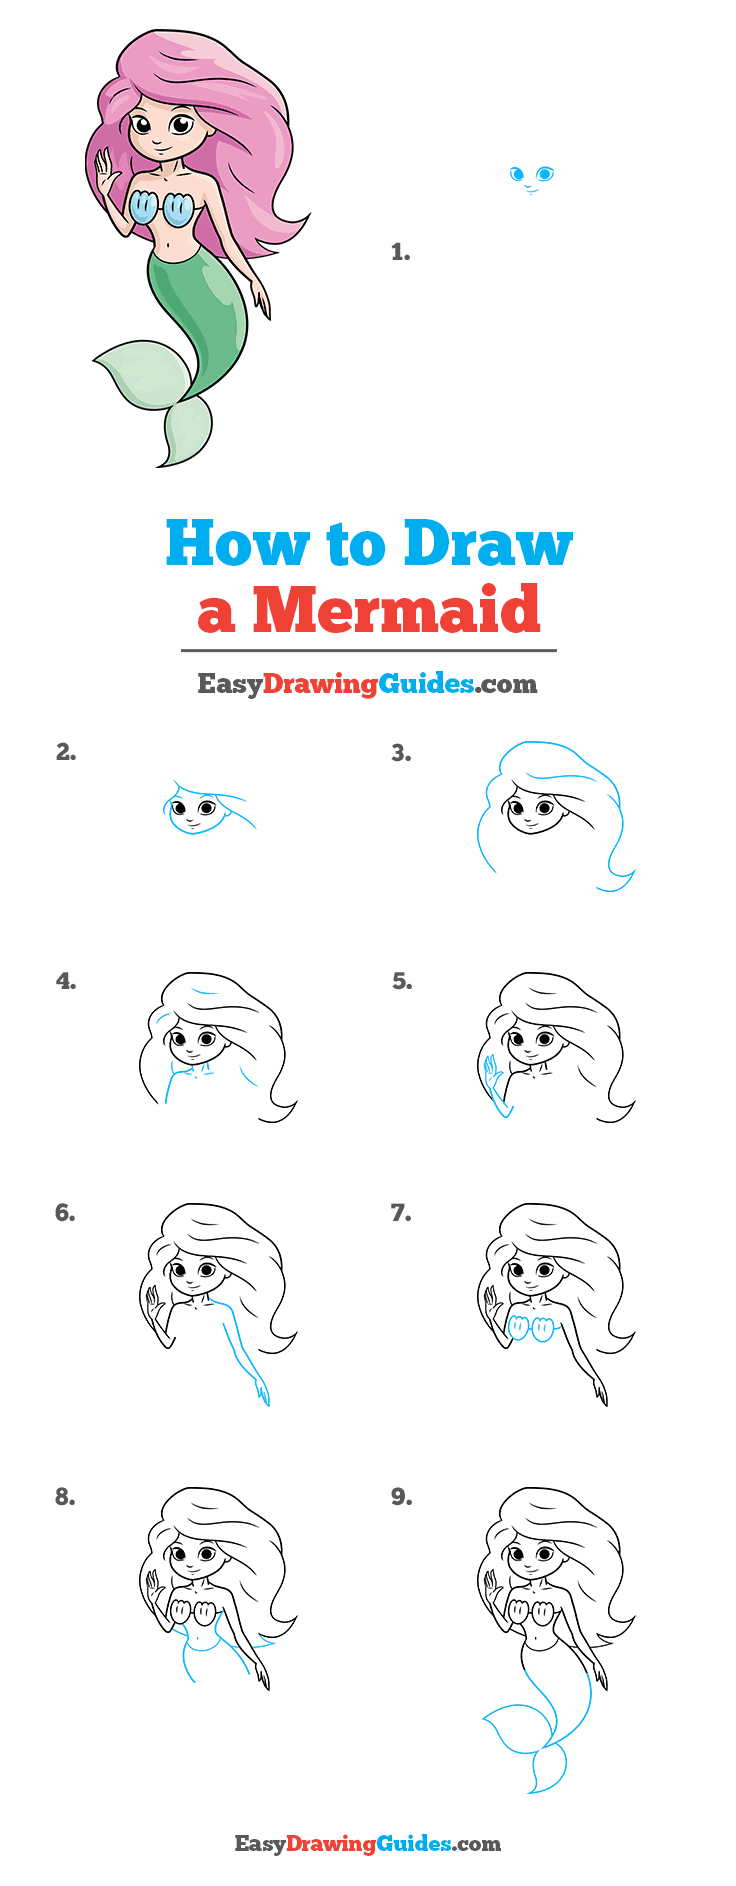 How to Draw a Mermaid Step by Step Tutorial Image